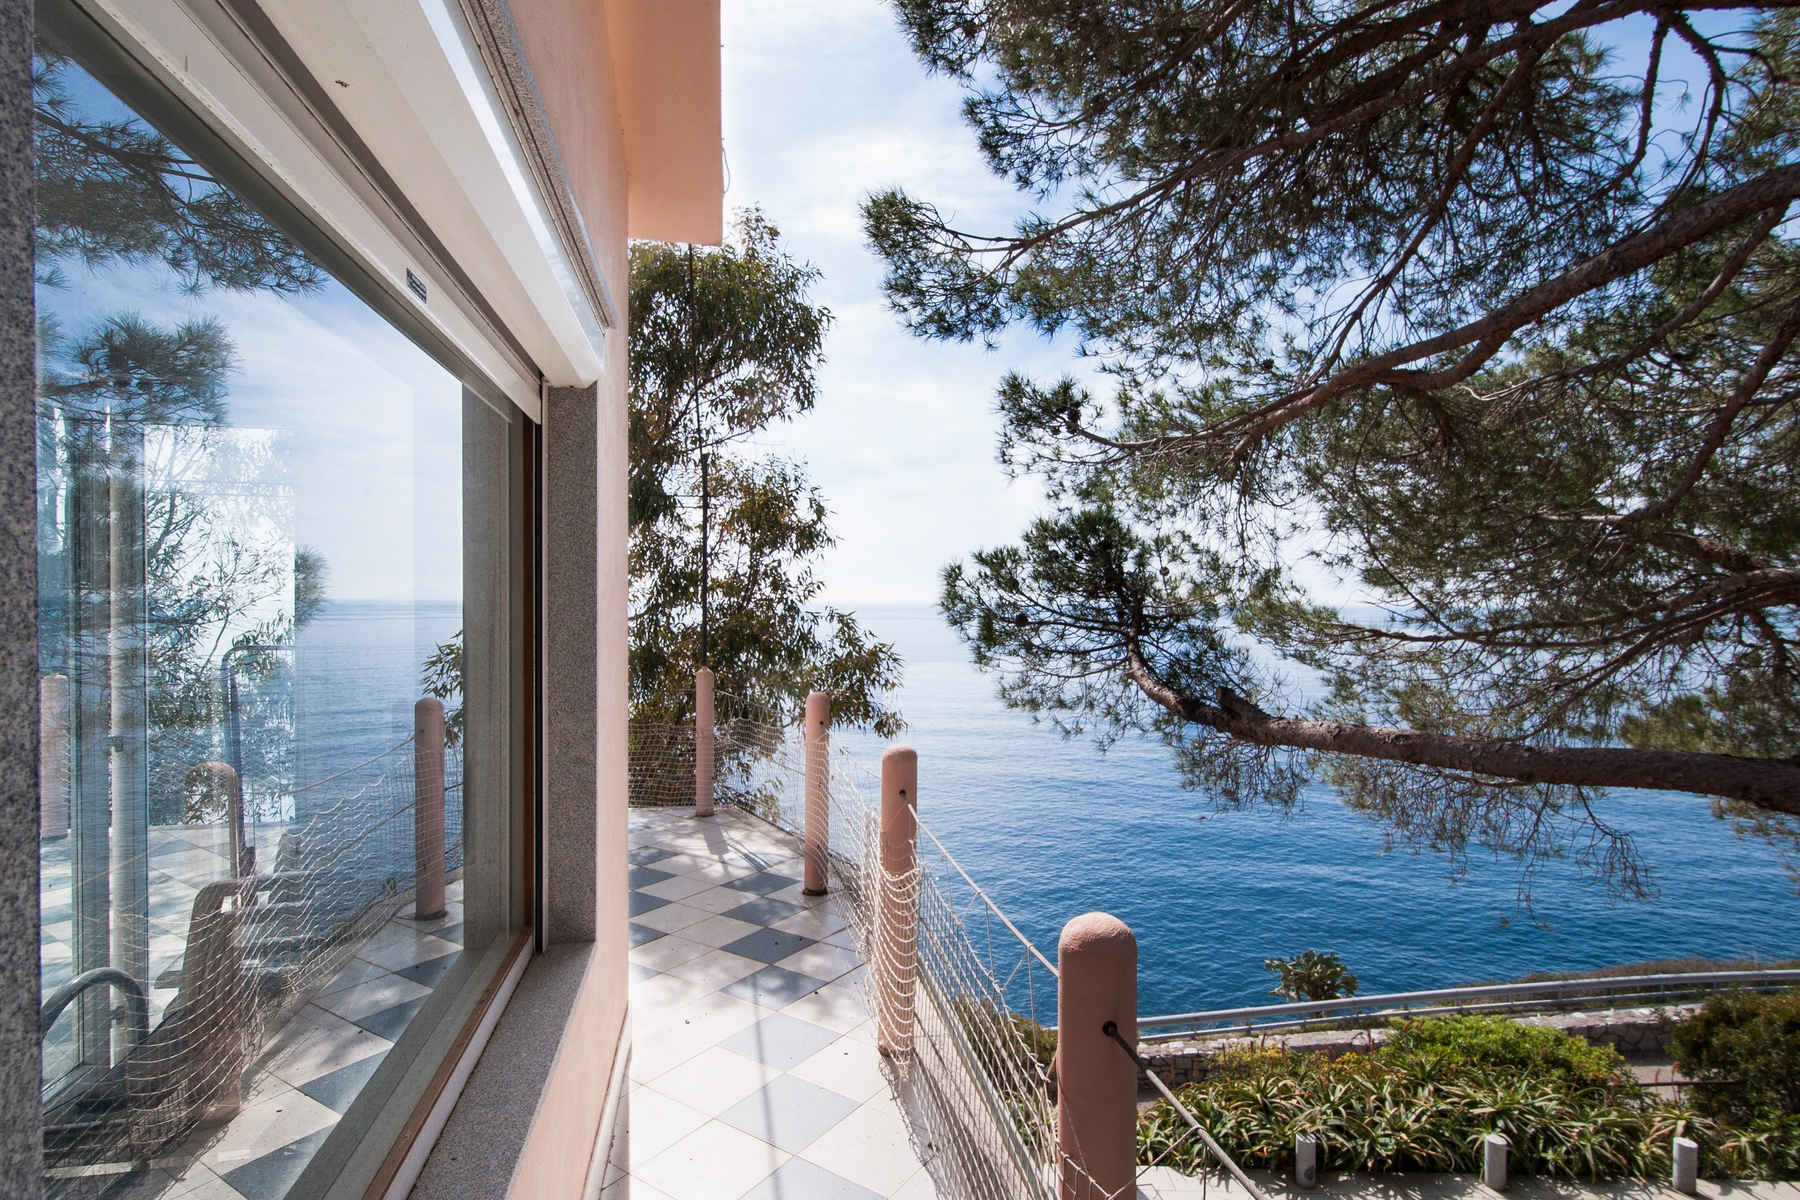 Single Family Home for Sale at Waterfront villa with pool at Isola d'Elba Campo Nell'elba, Livorno 57034 Italy